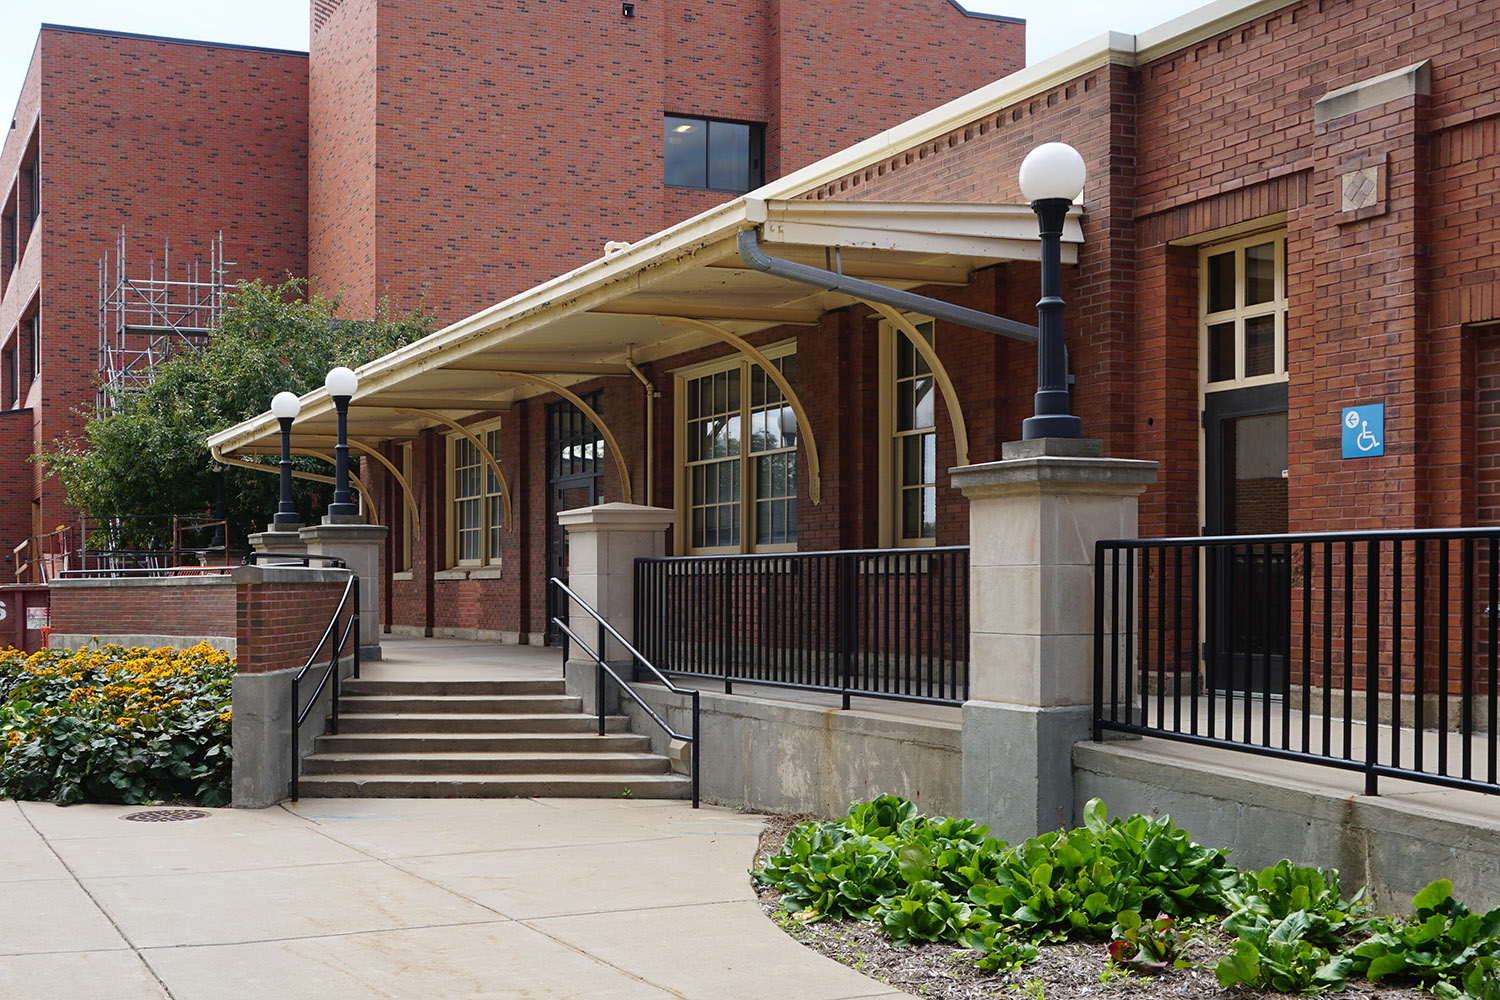 Haecker Hall